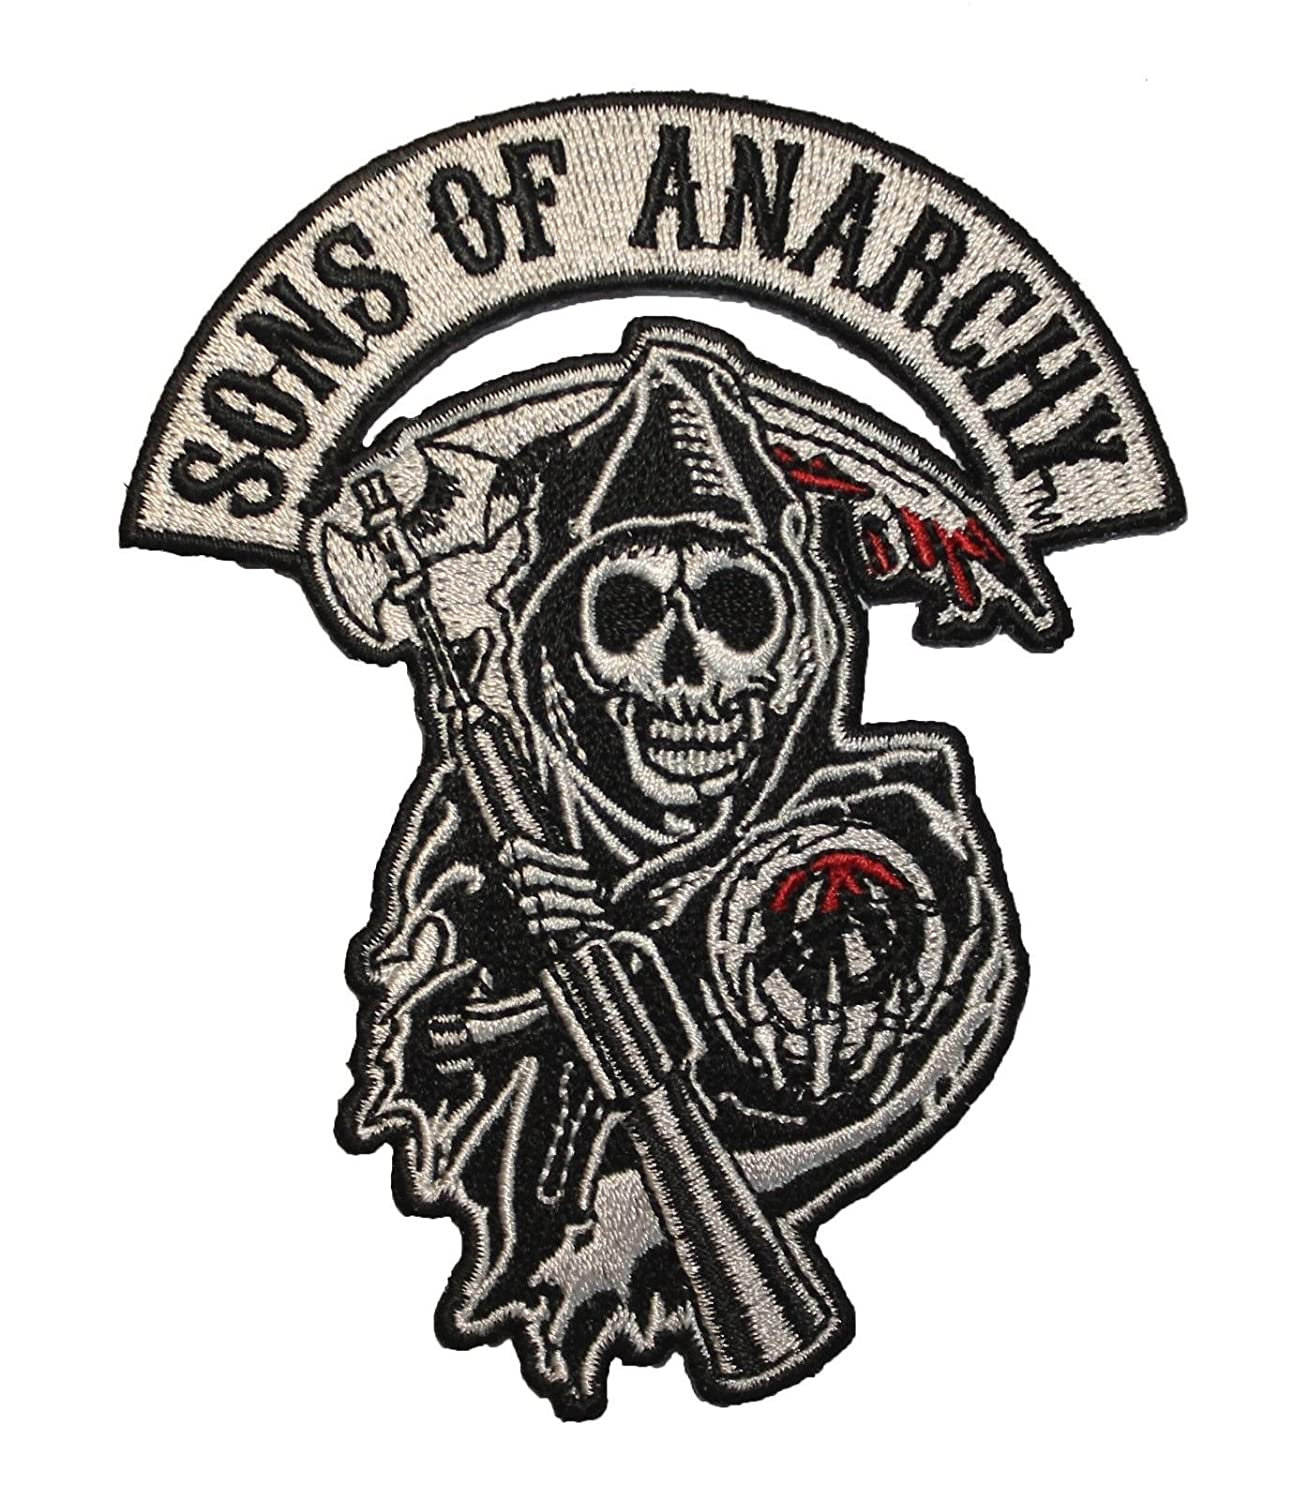 sons of anarchy reaper logo road gear patch amazon co uk car rh amazon co uk Sons of Anarchy Reaper Logo Sons of Anarchy Logo Stencil